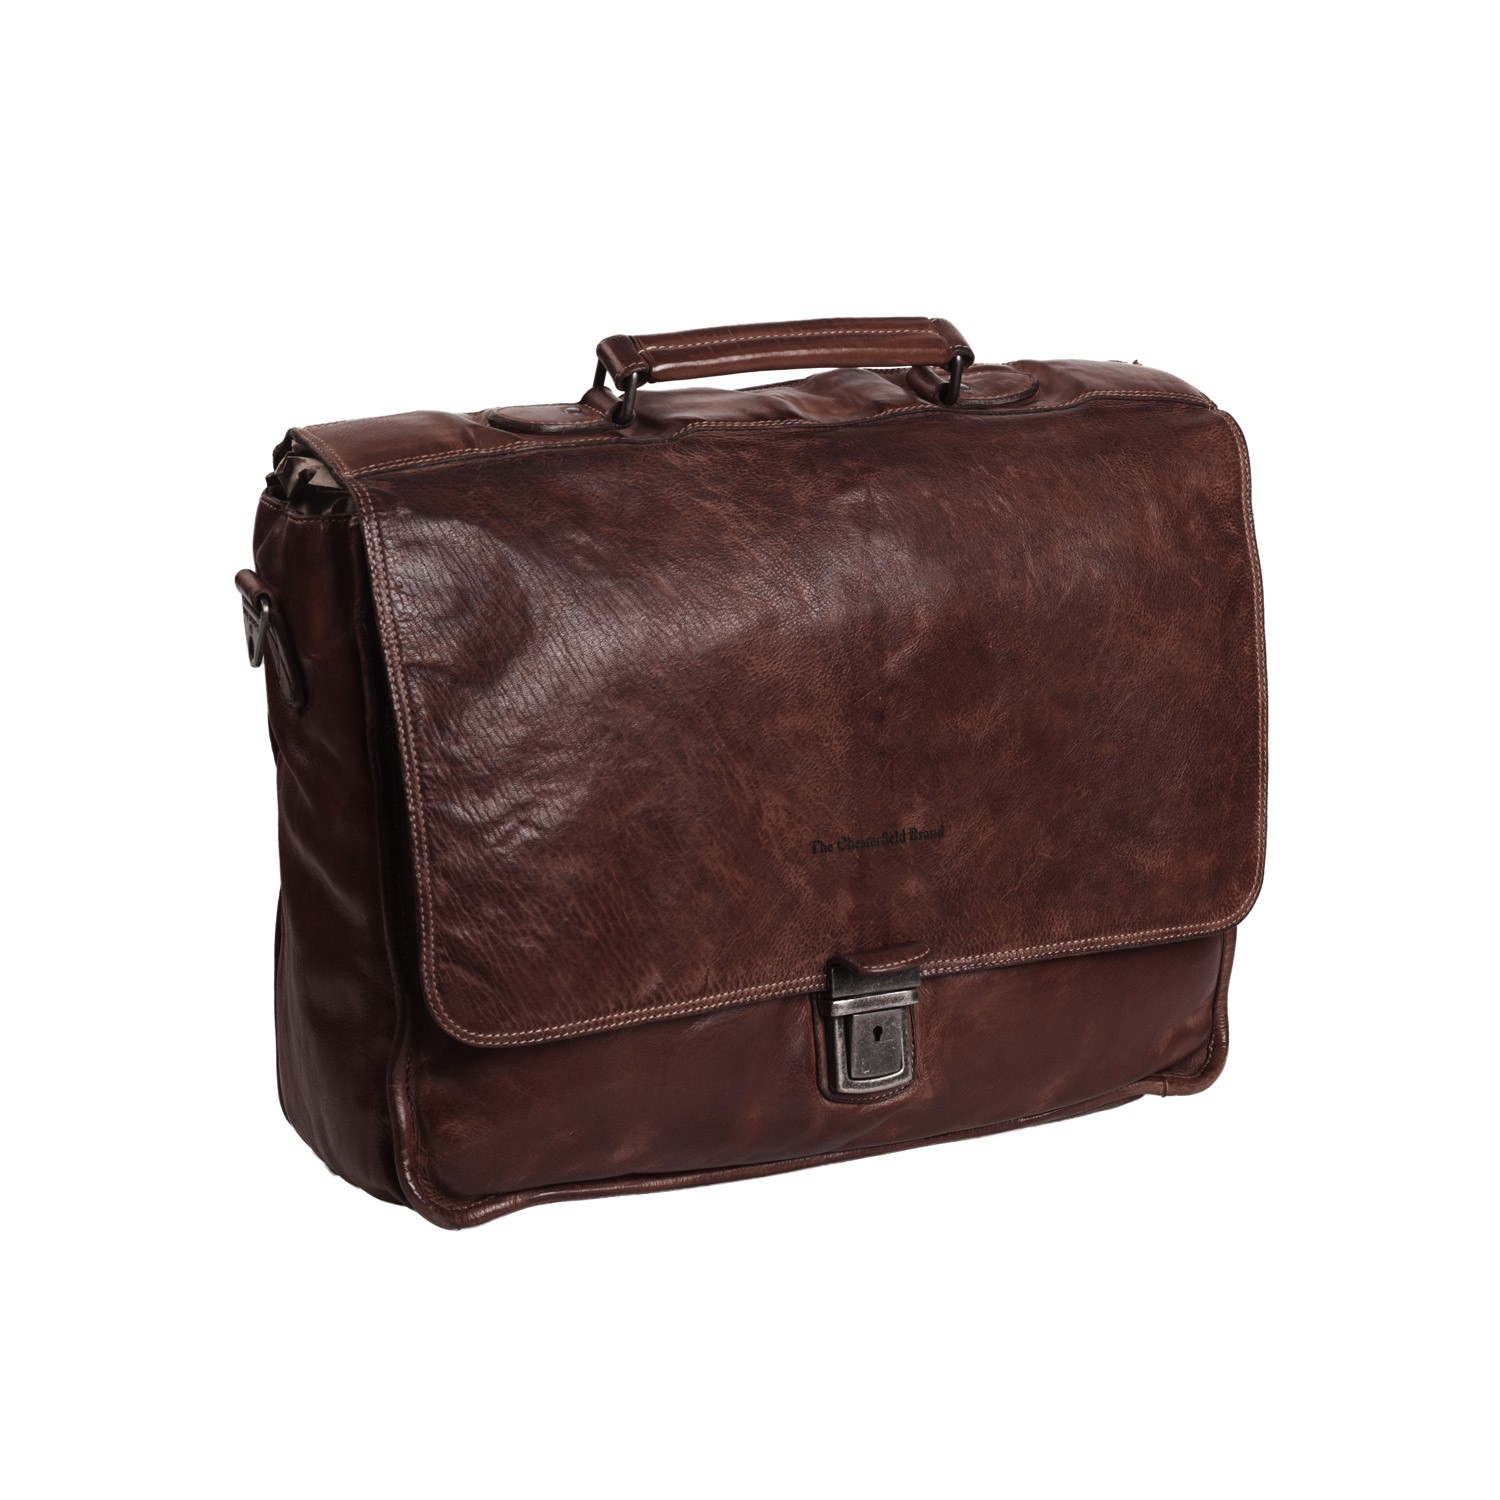 6029808a40 Leather Briefcase Brown Aberdeen